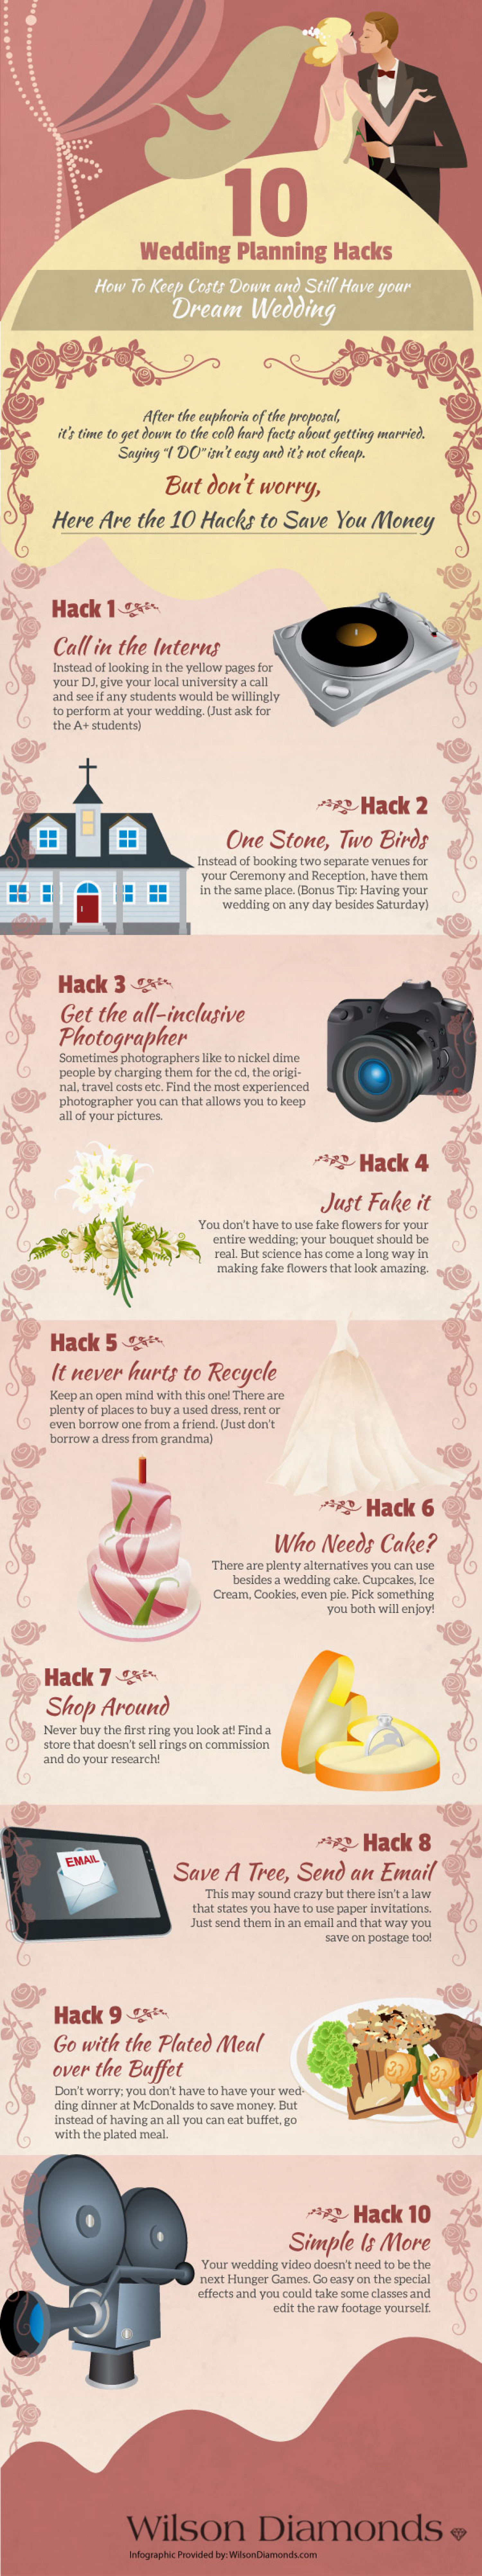 10 Wedding Planning Hacks Infographic